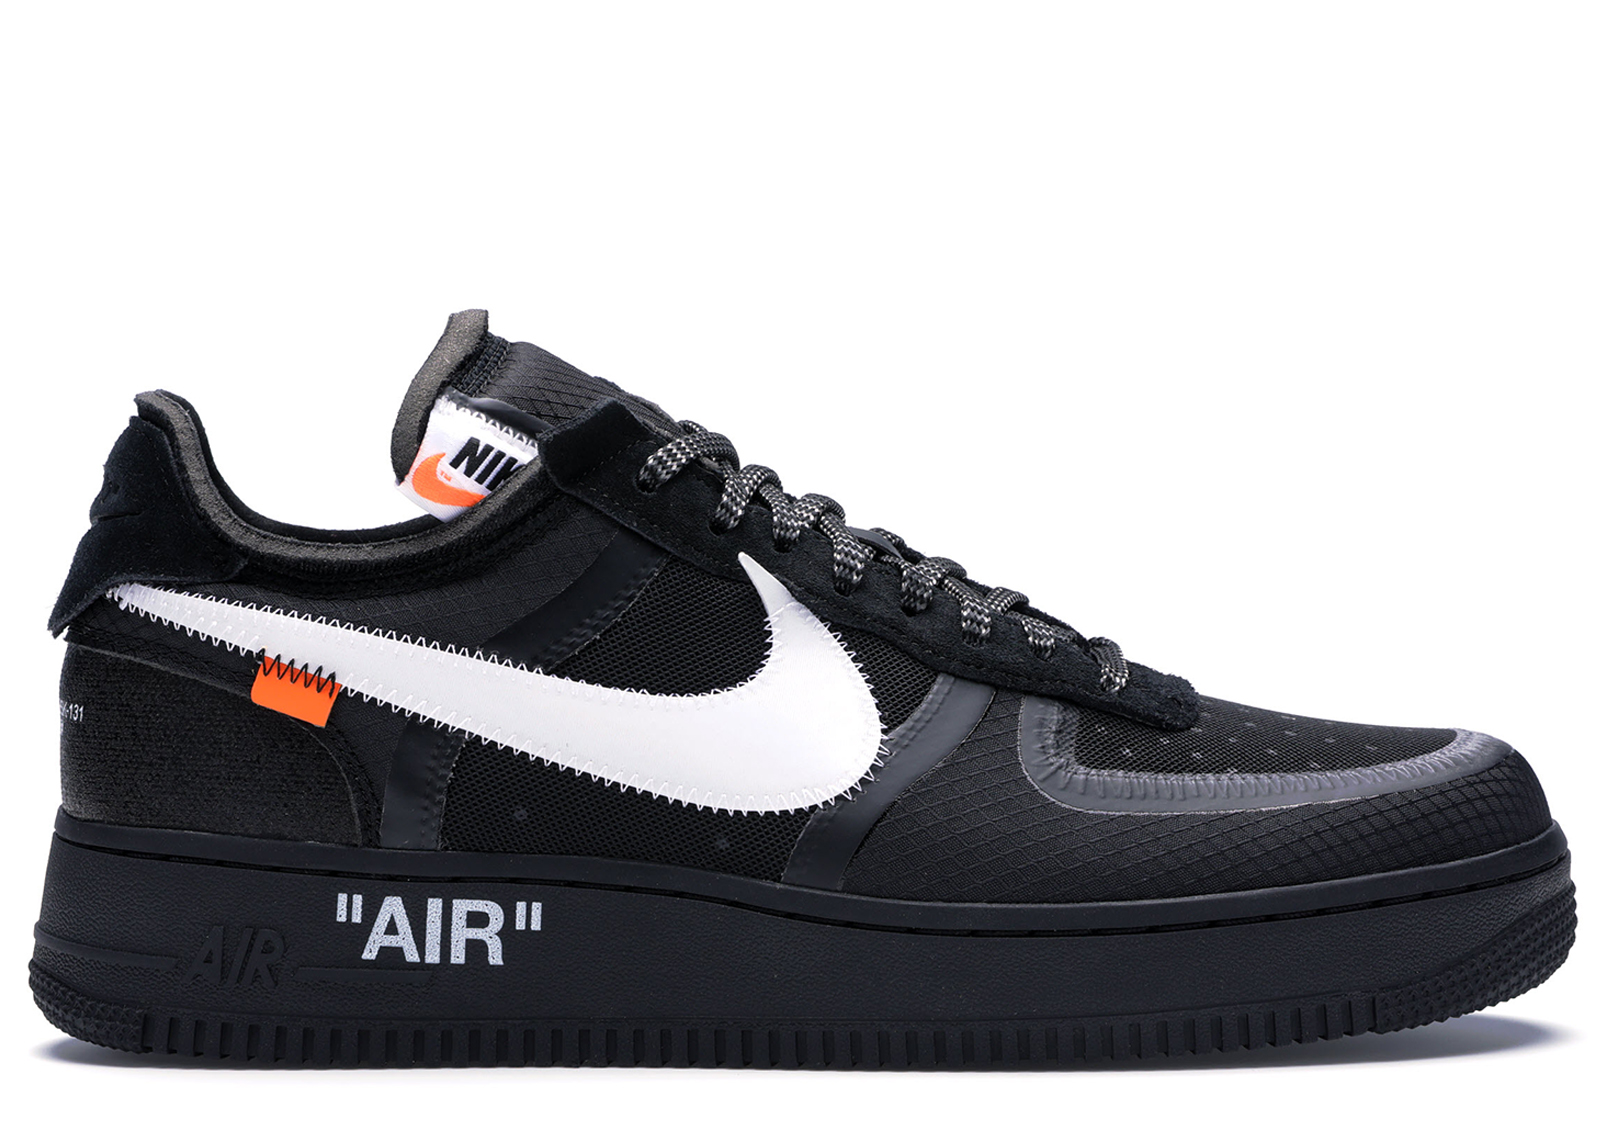 Nike X Ow Air Force 1 Black